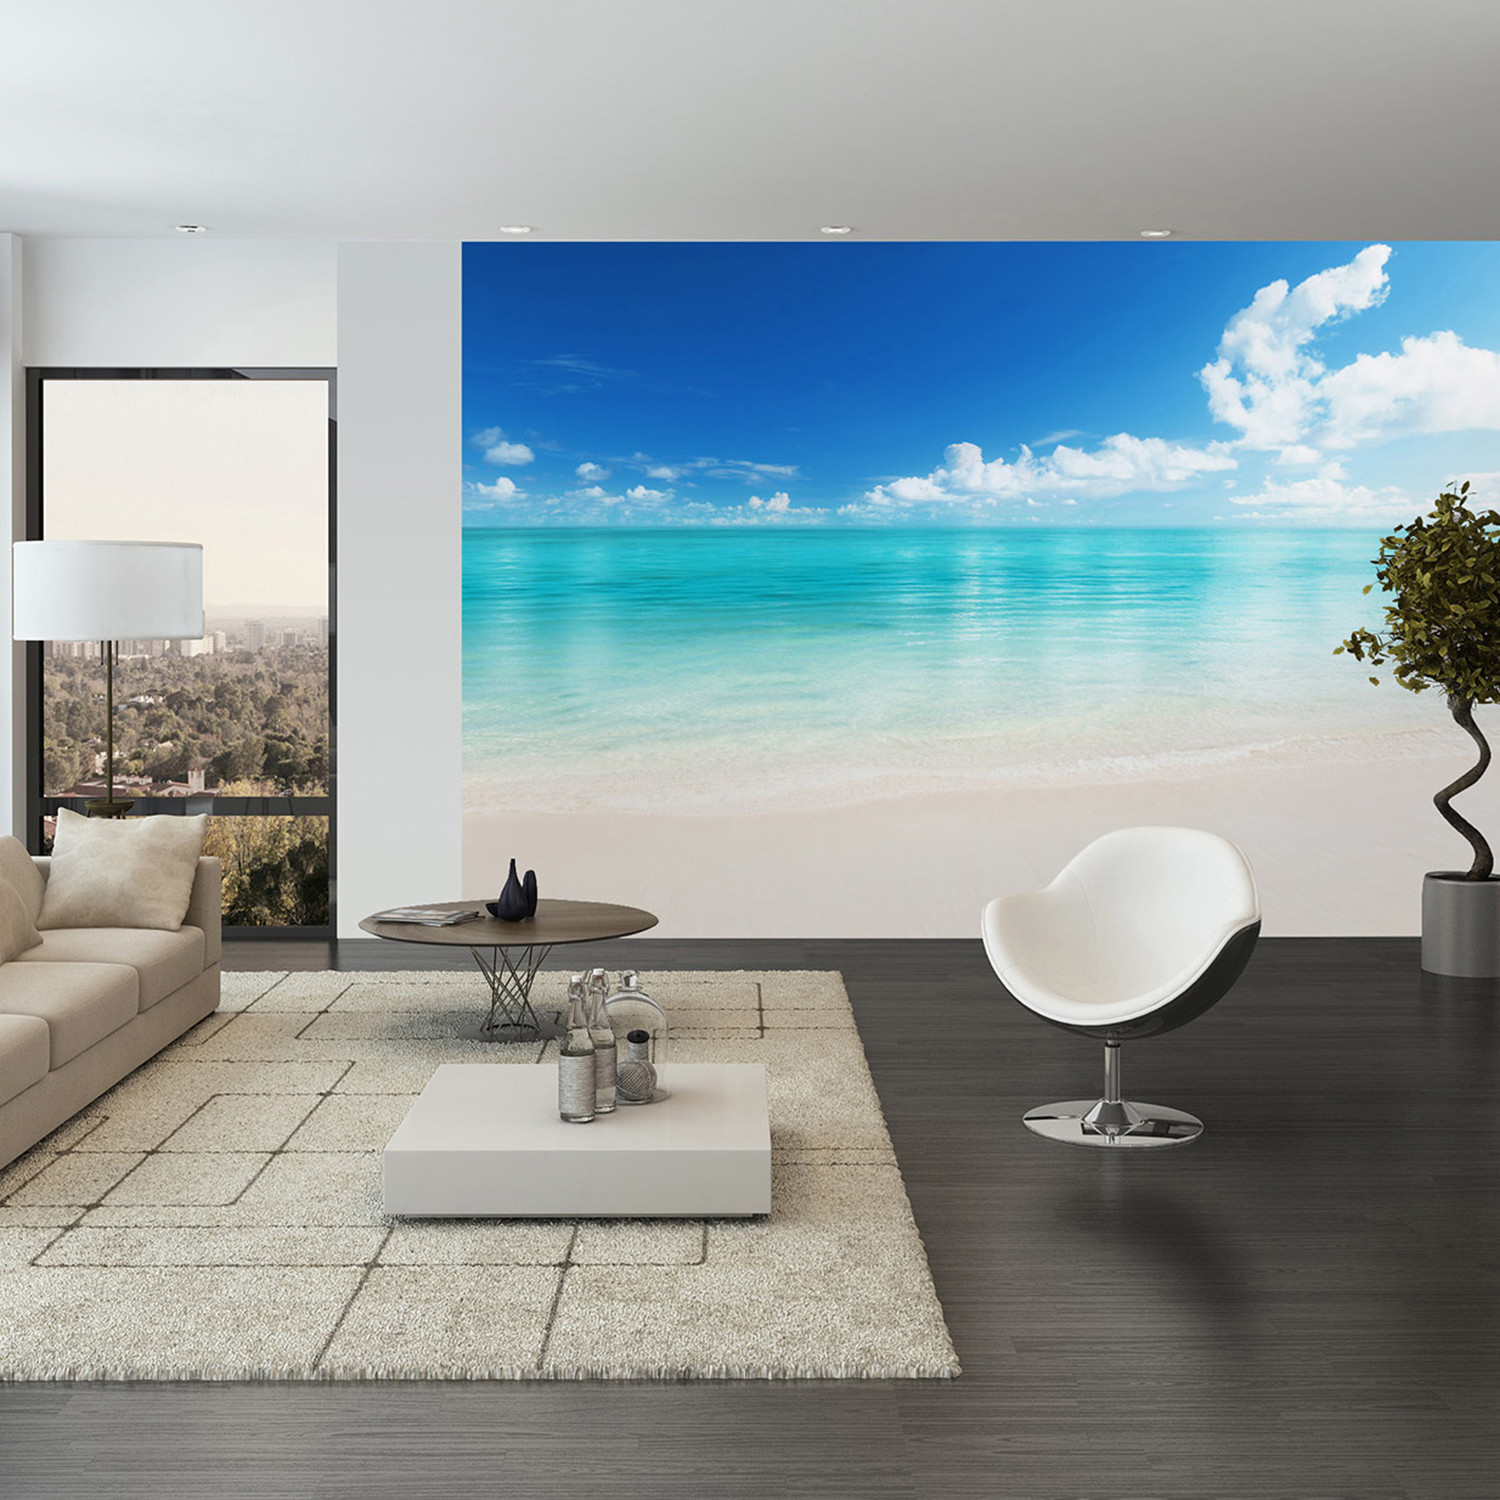 The Beach Wall Mural Clearance Wall Art Touch of Modern